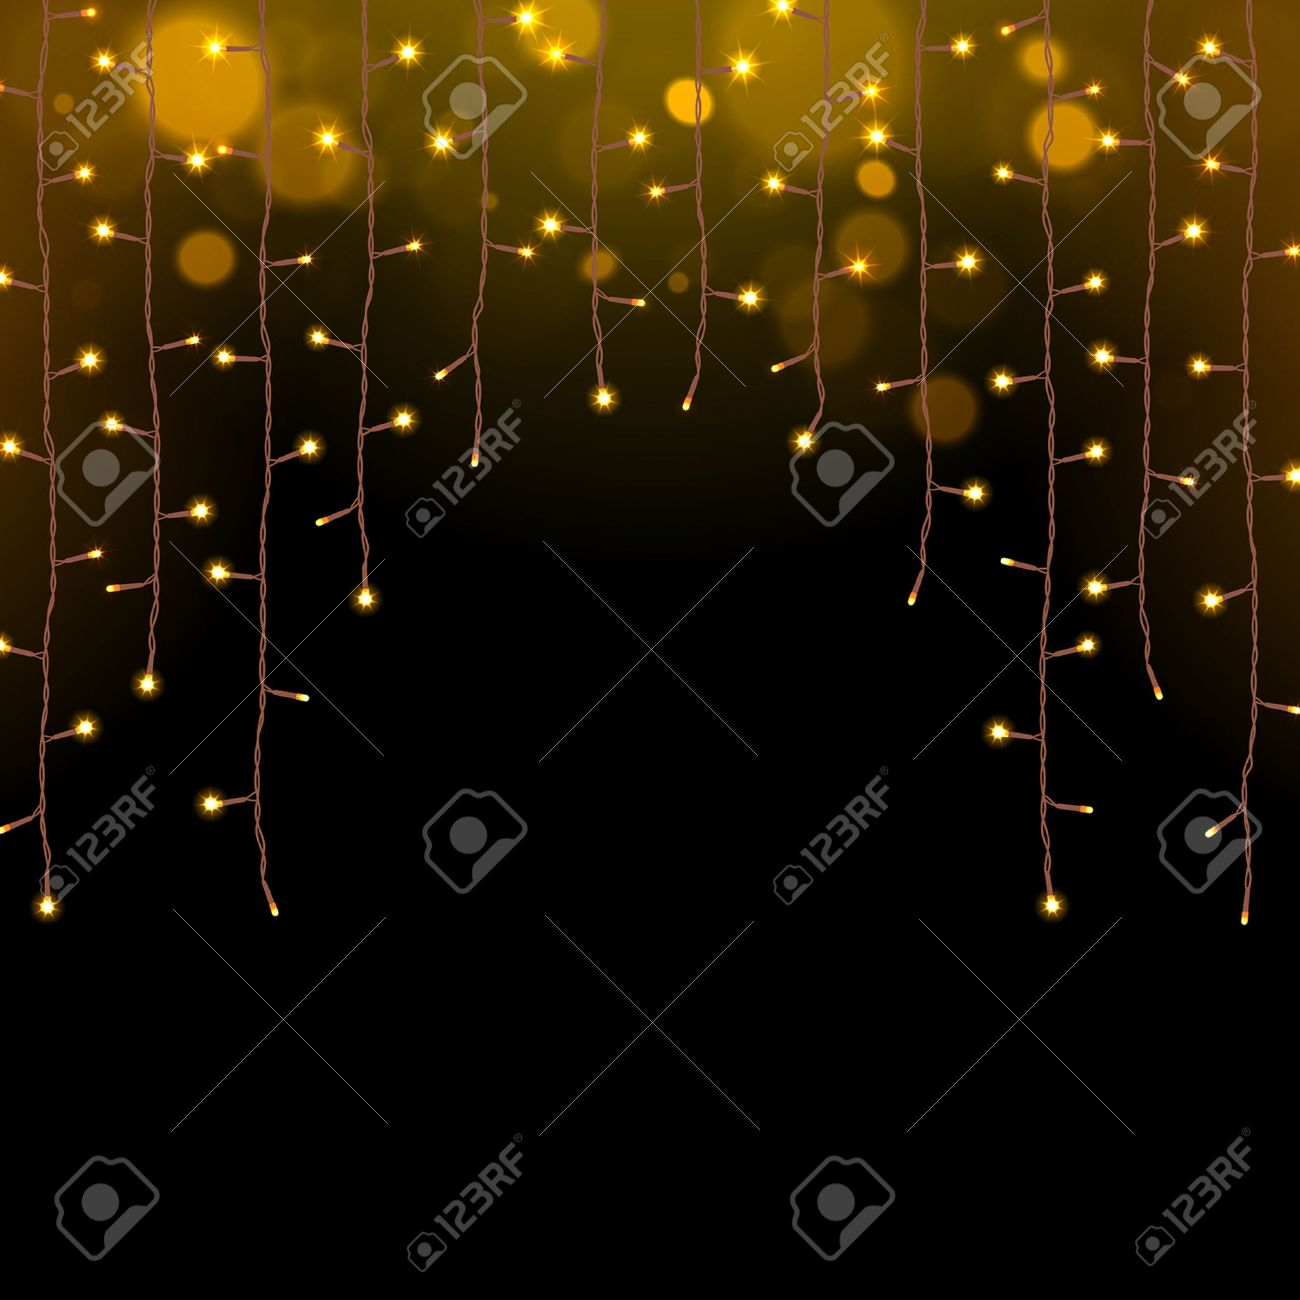 Glowing Christmas Lights Garland On A Dark Background Stock Vector